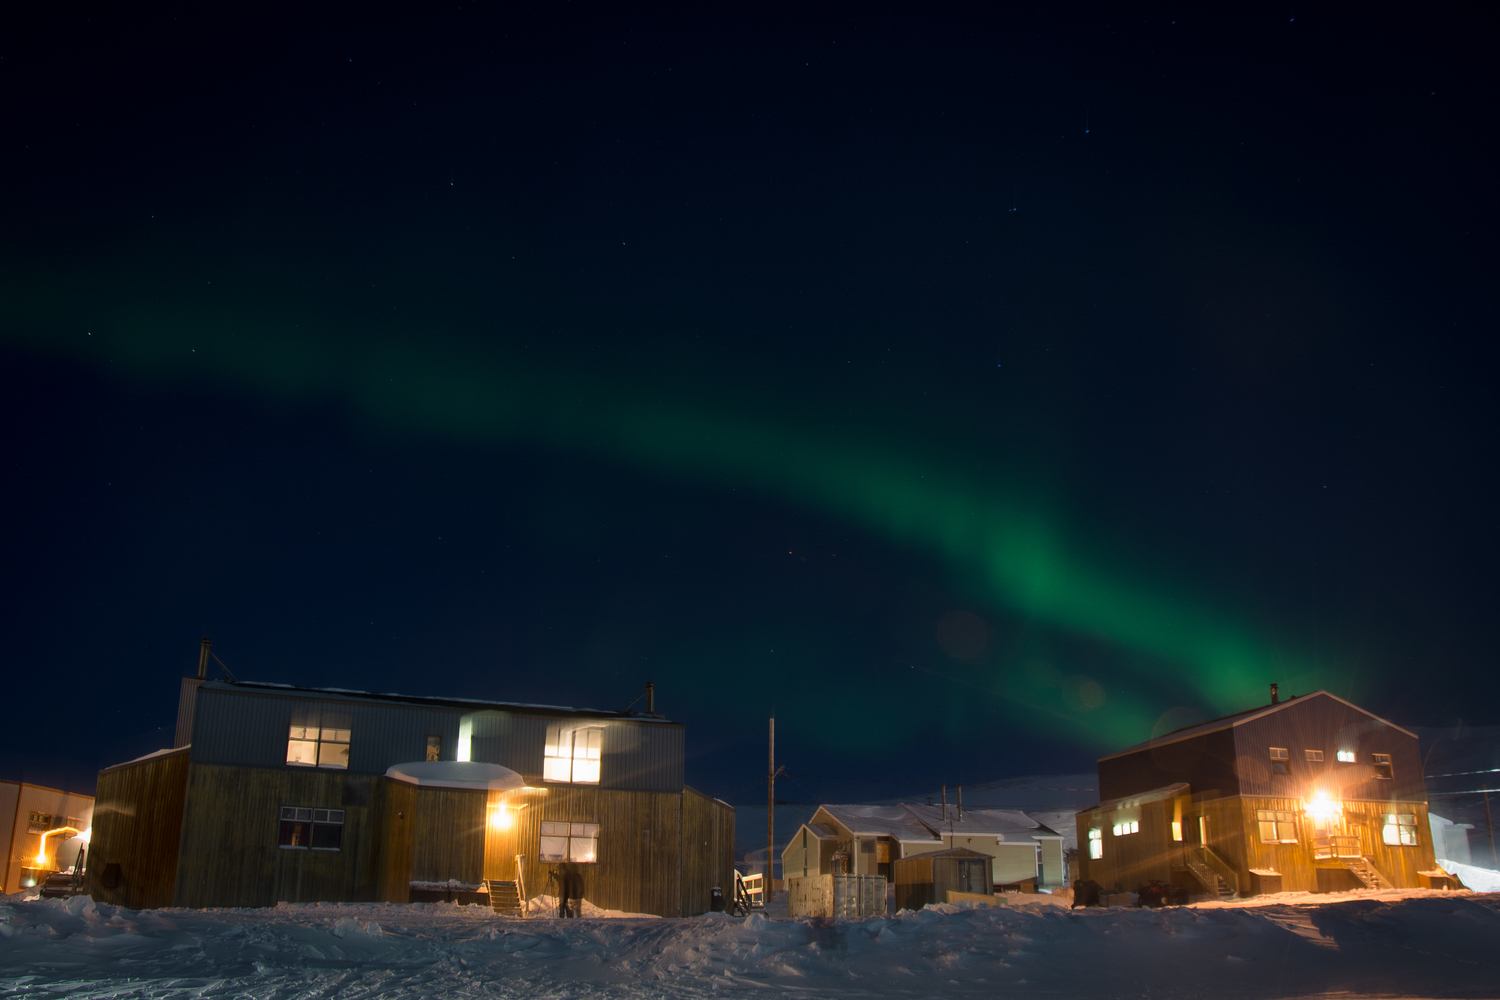 Eva's picture of the northern lights flickering over the complex that we stayed in.